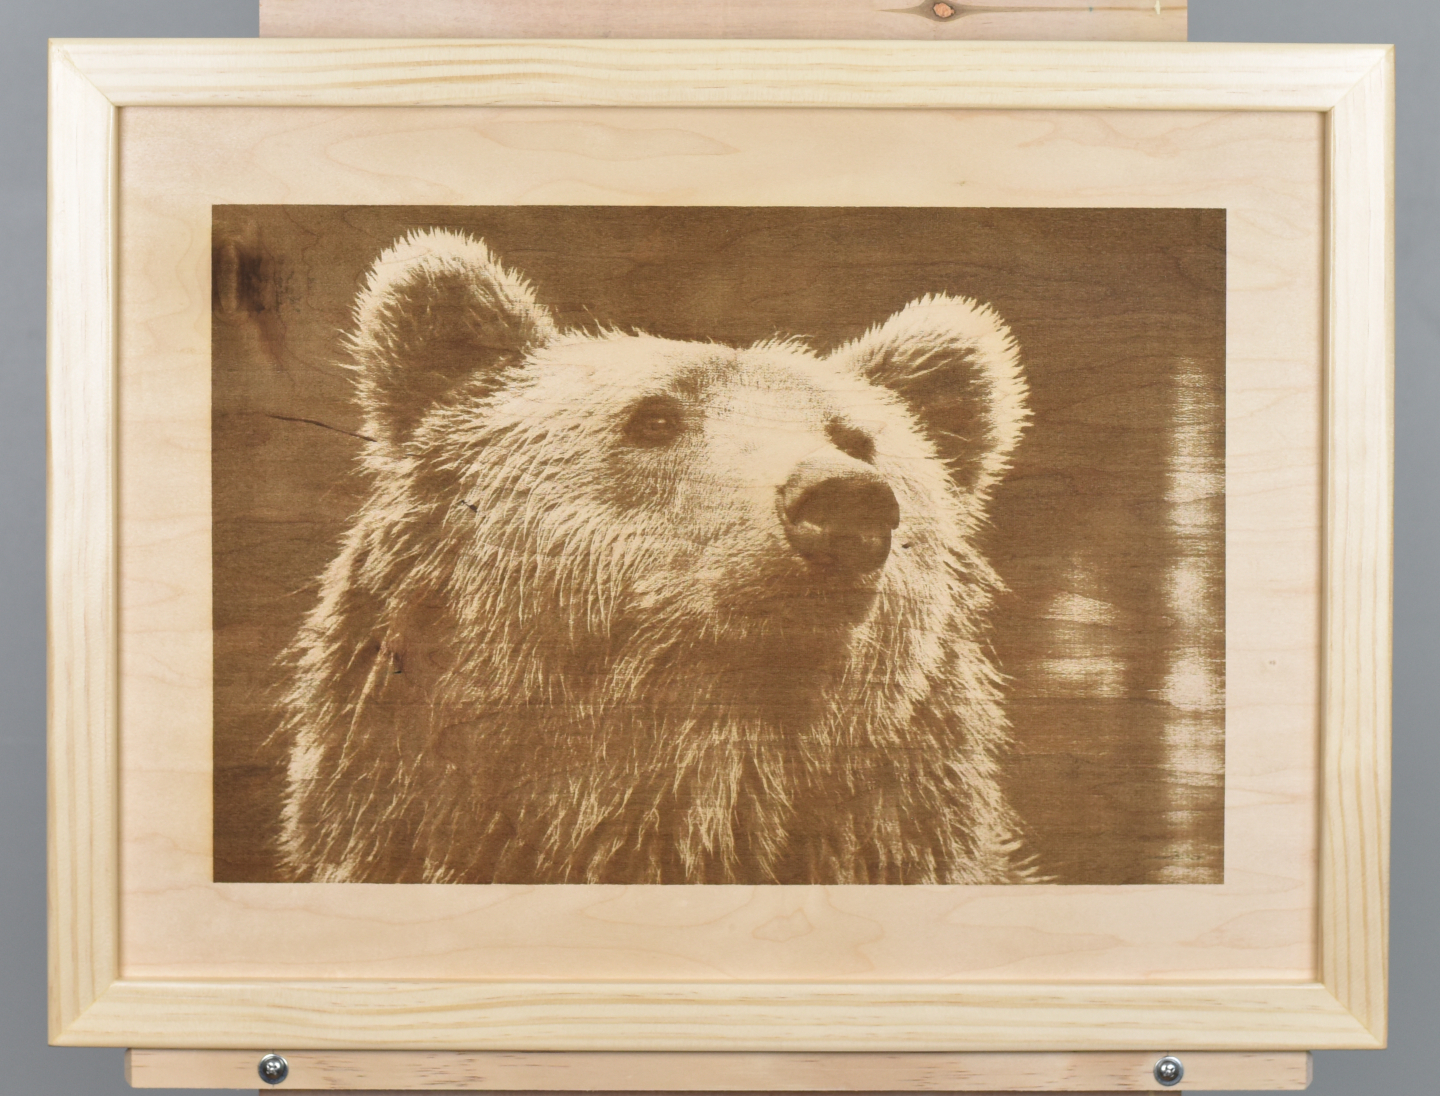 A wood burning (digital pyrograph) of a brown bear based on a photograph by Rasmus Svinding.